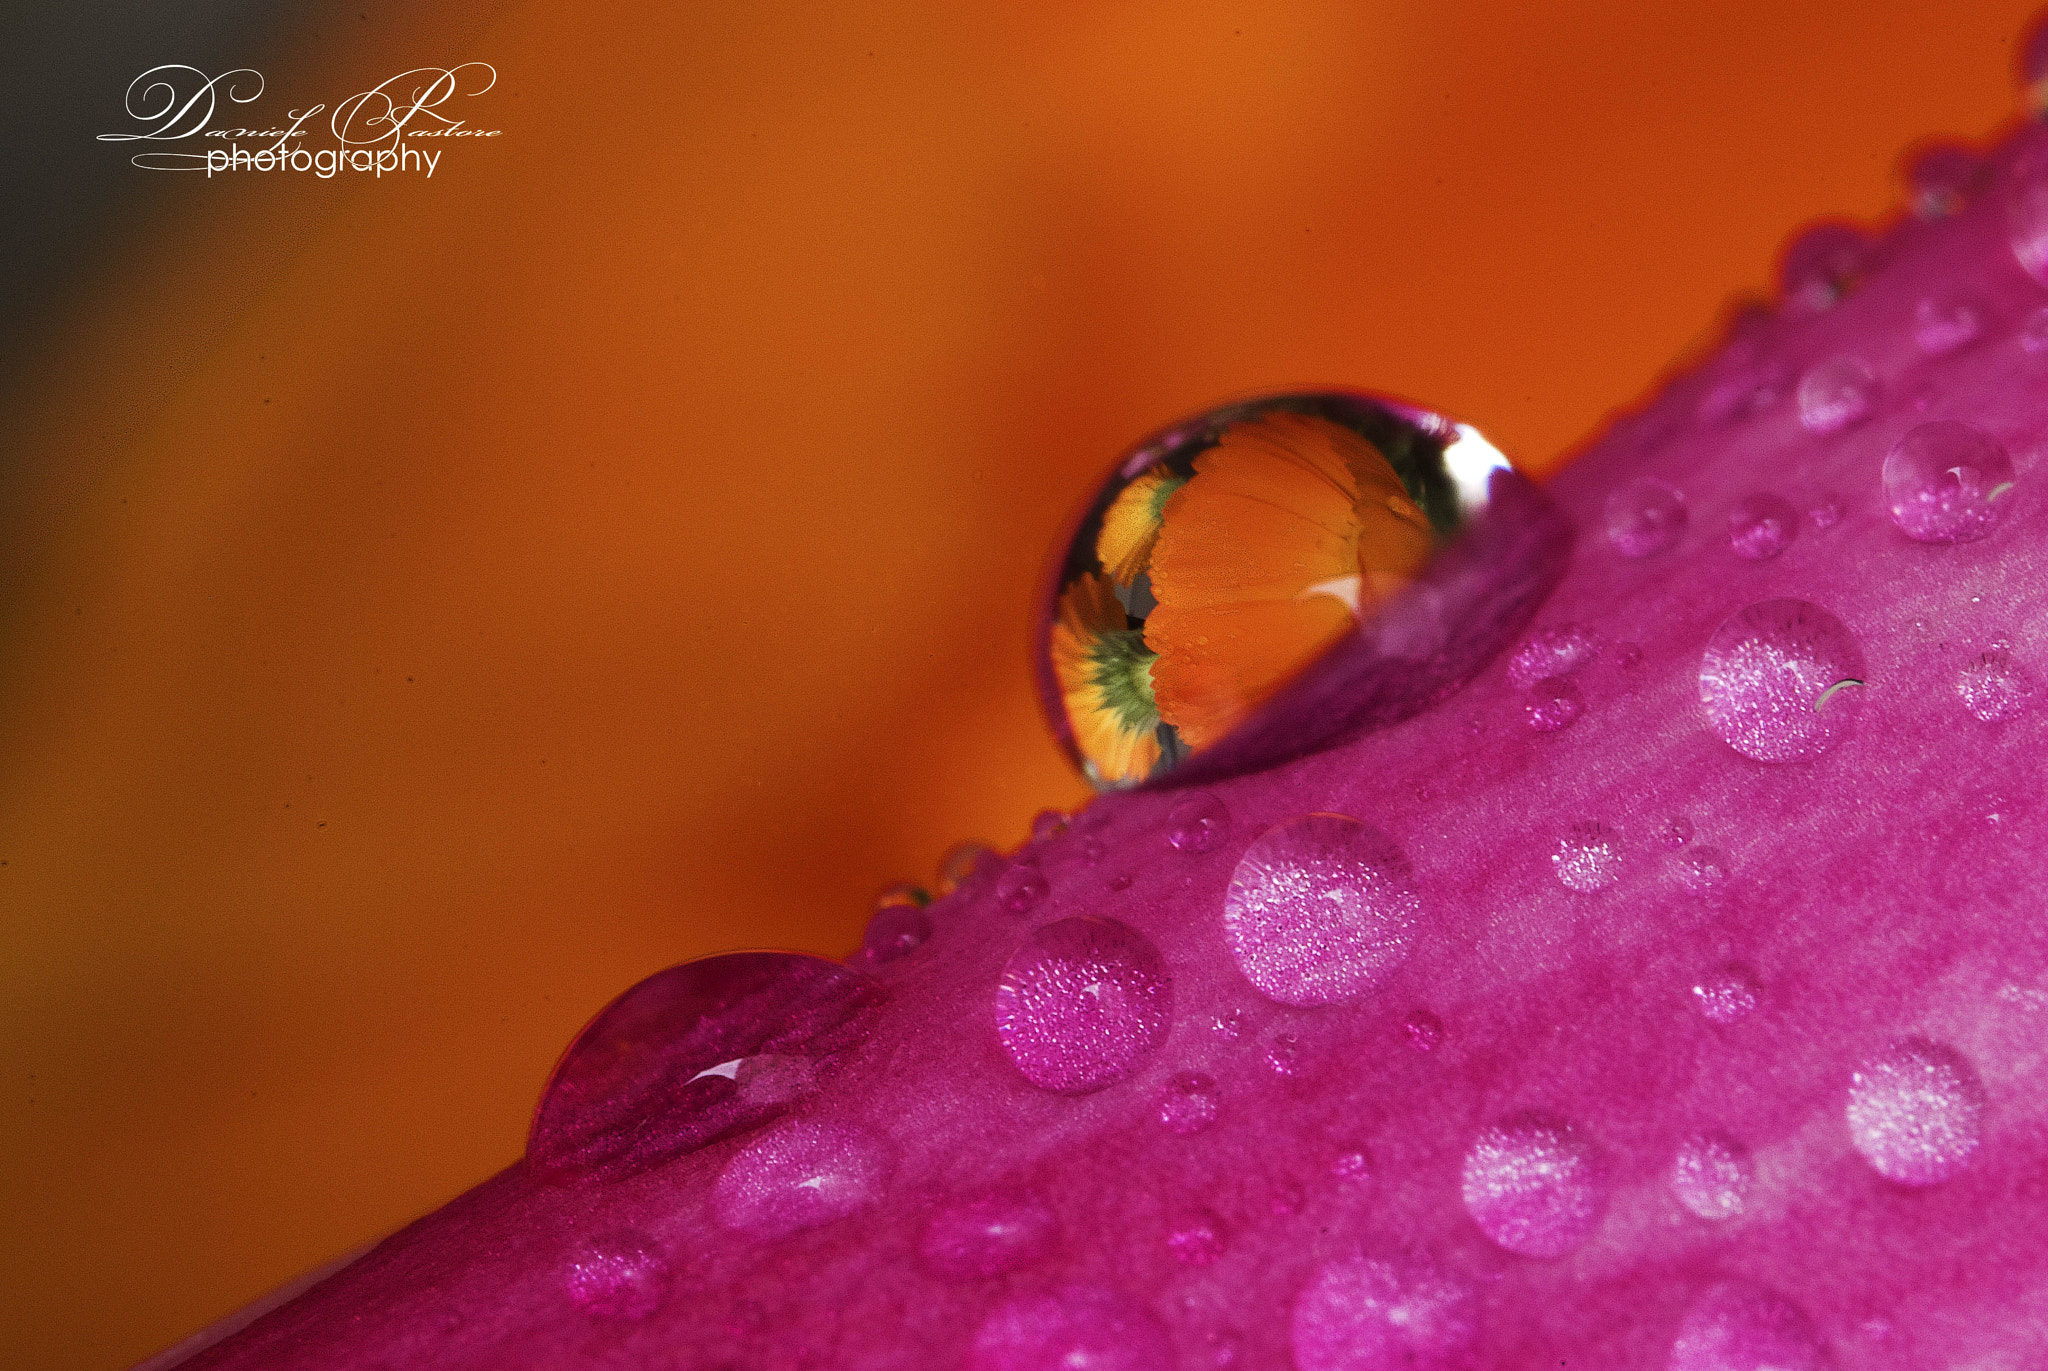 Photograph Looking throught the drop... by Daniele Pastore on 500px